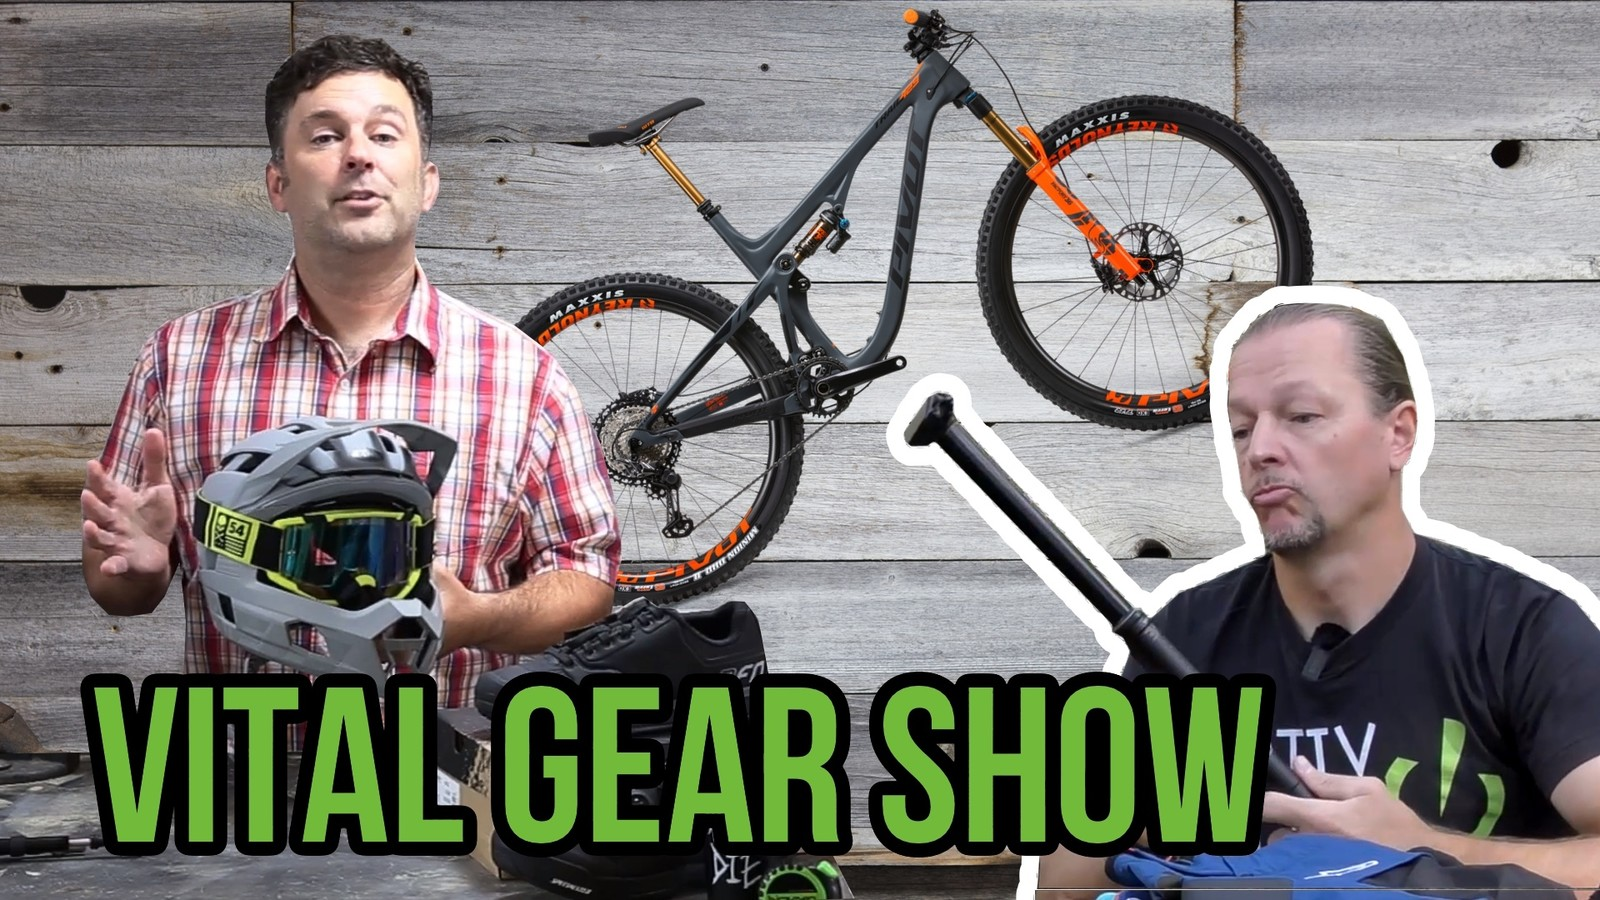 WHAT THE HECK IS AN UNDERBIKE? Vital Gear Show